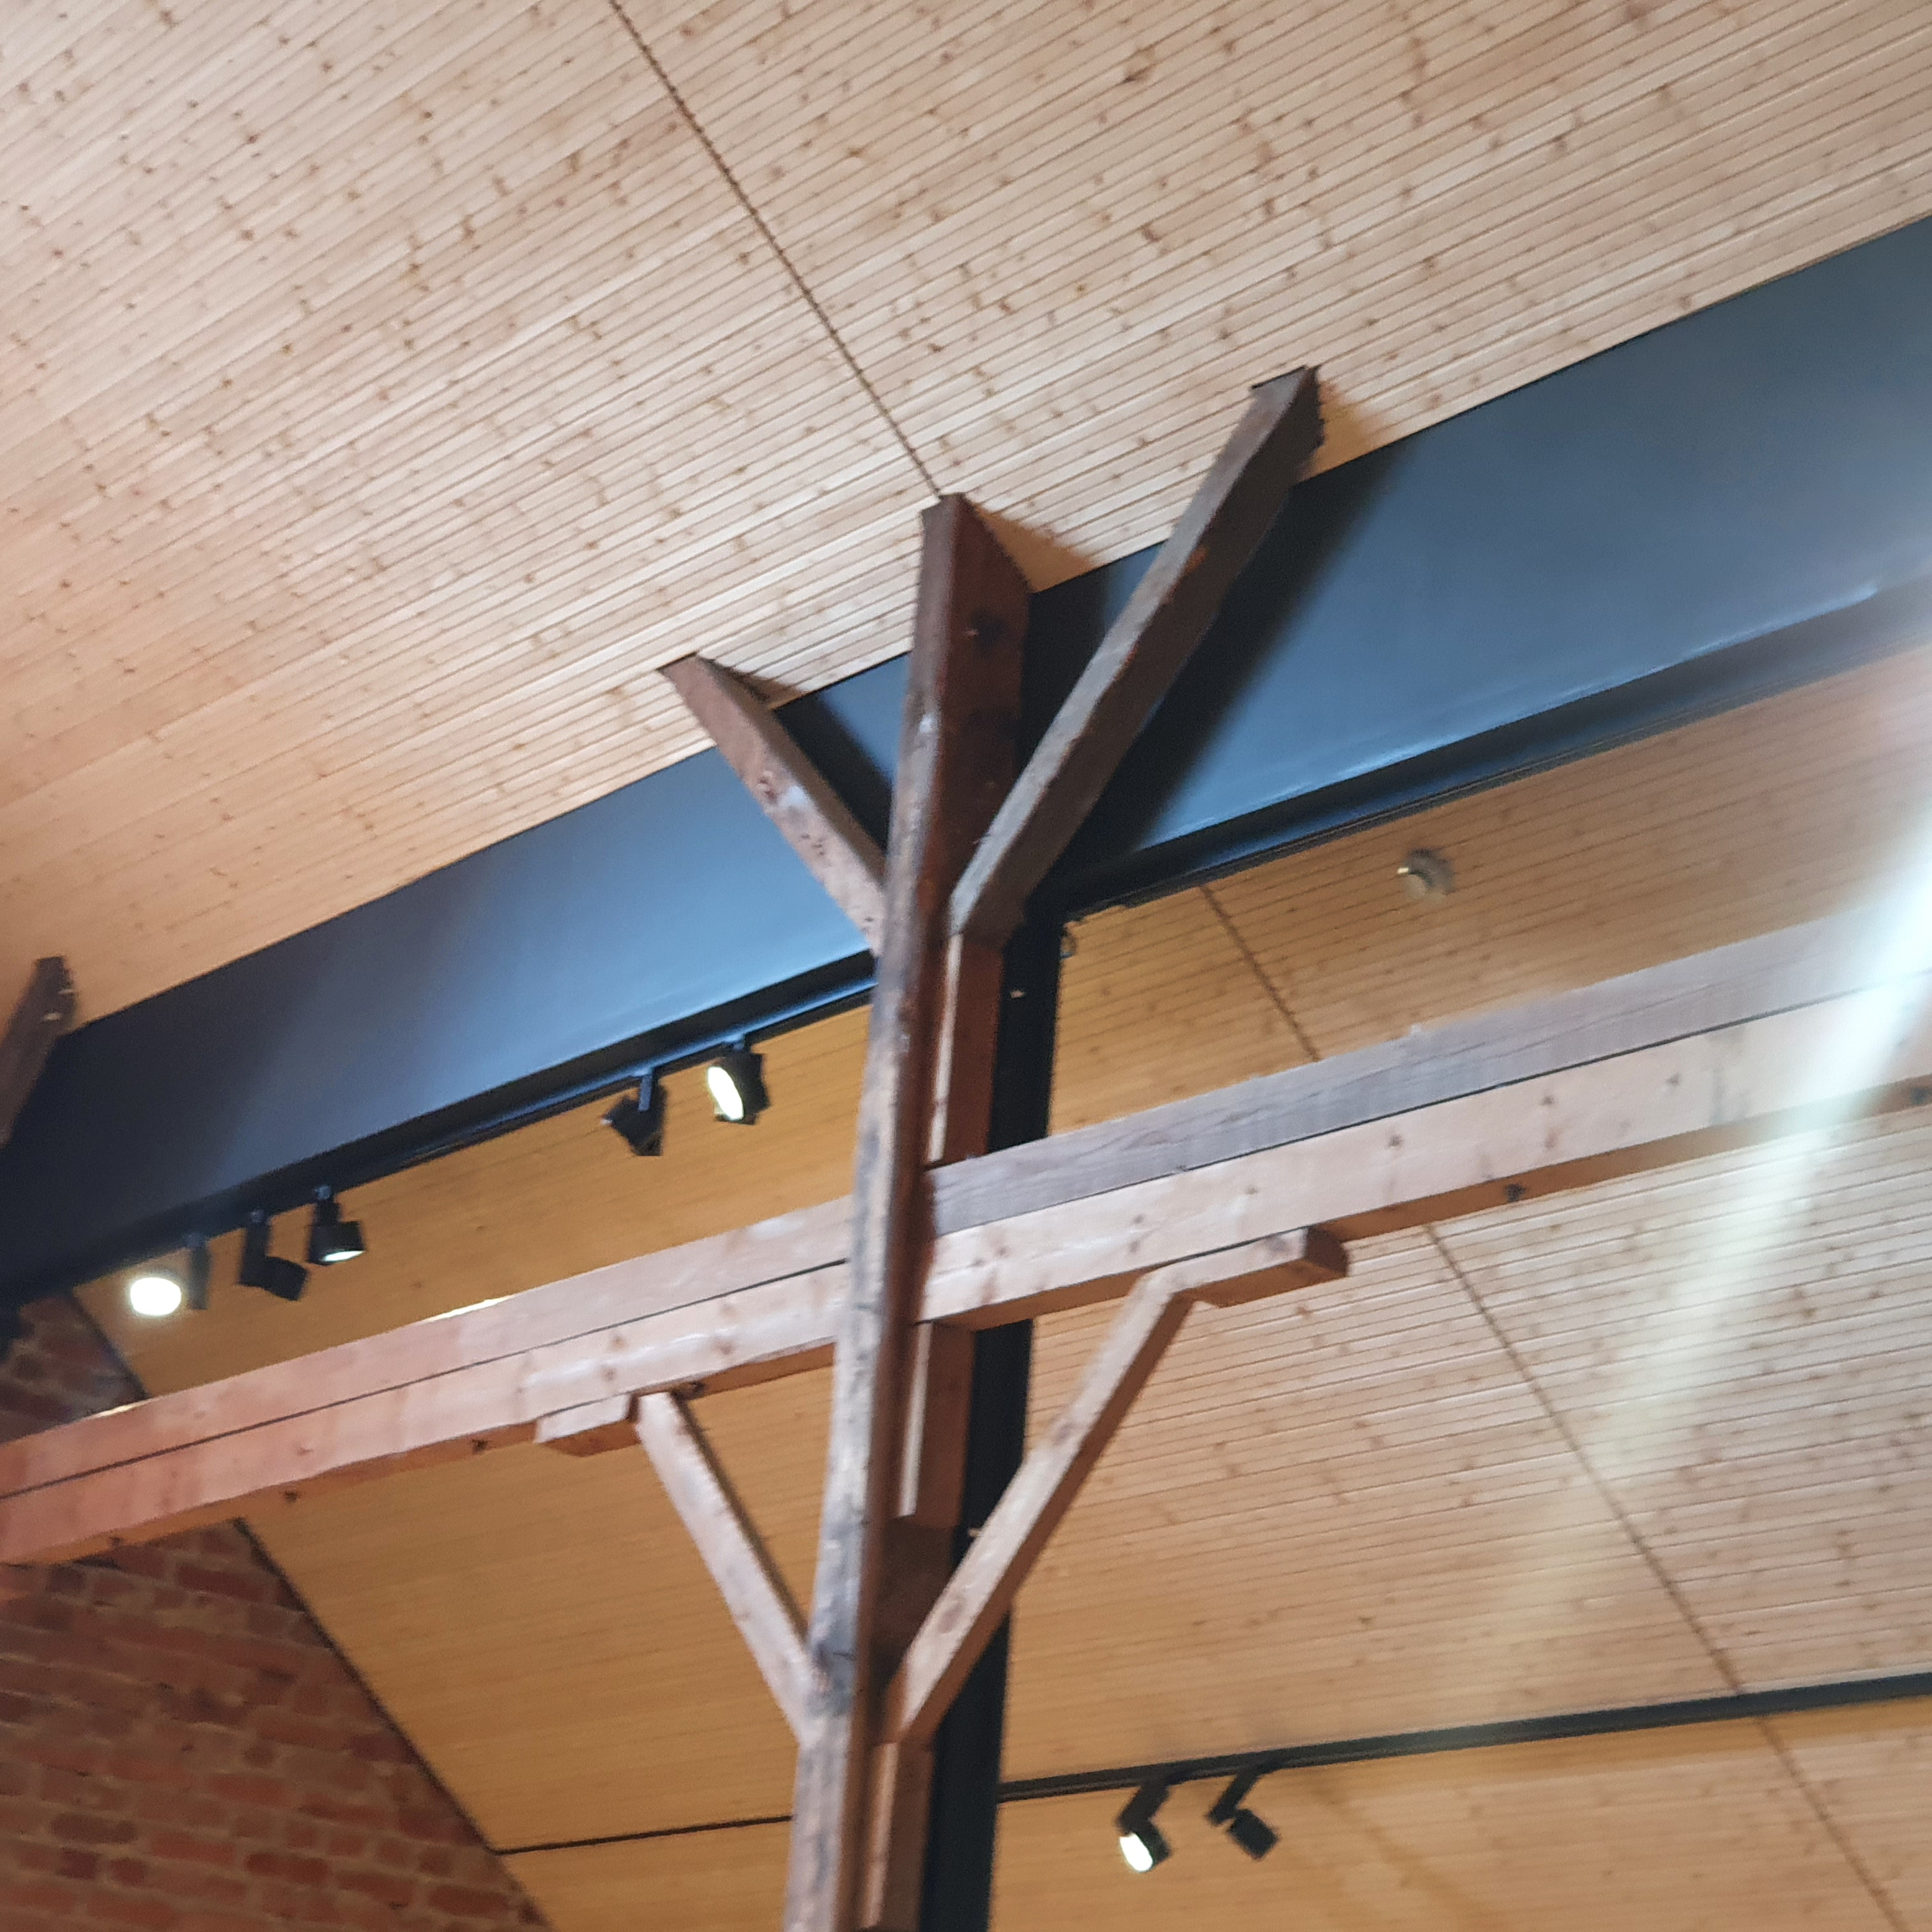 Dark wood pillars and beams against a background of a light wooden ceiling sloping to the centre